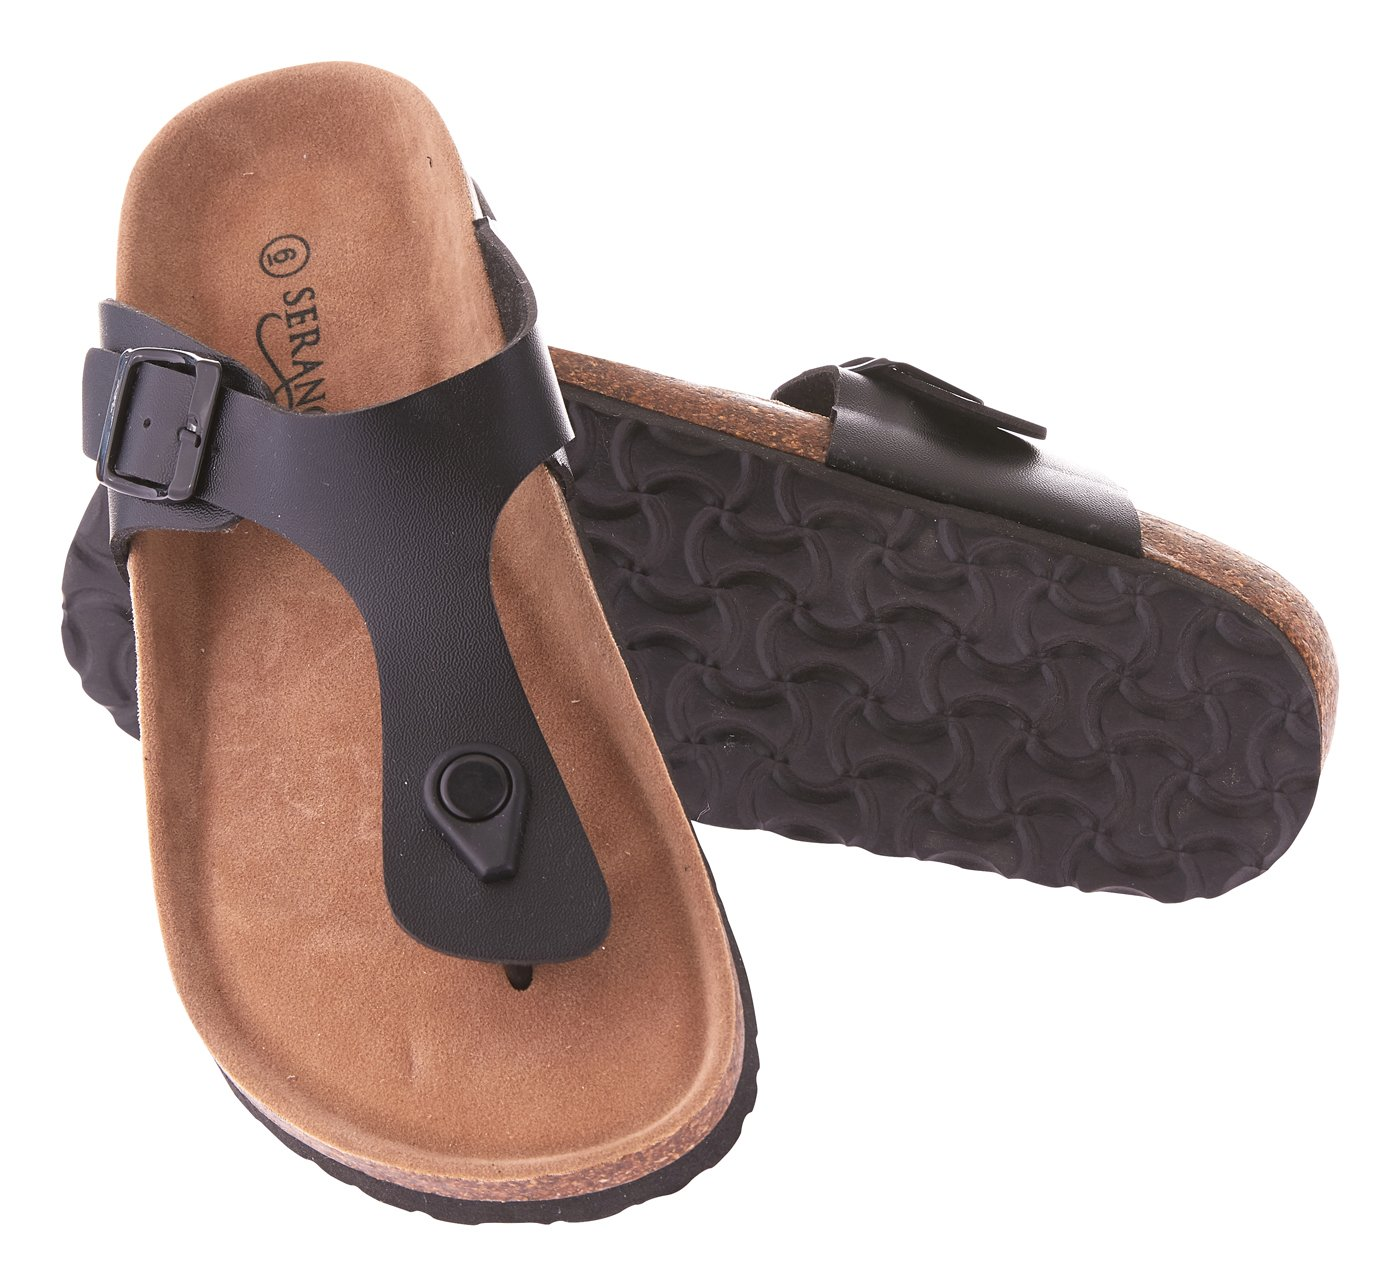 Seranoma Women's Thong Sandal Platform with Cork Wedge Sole & Microfiber Insole